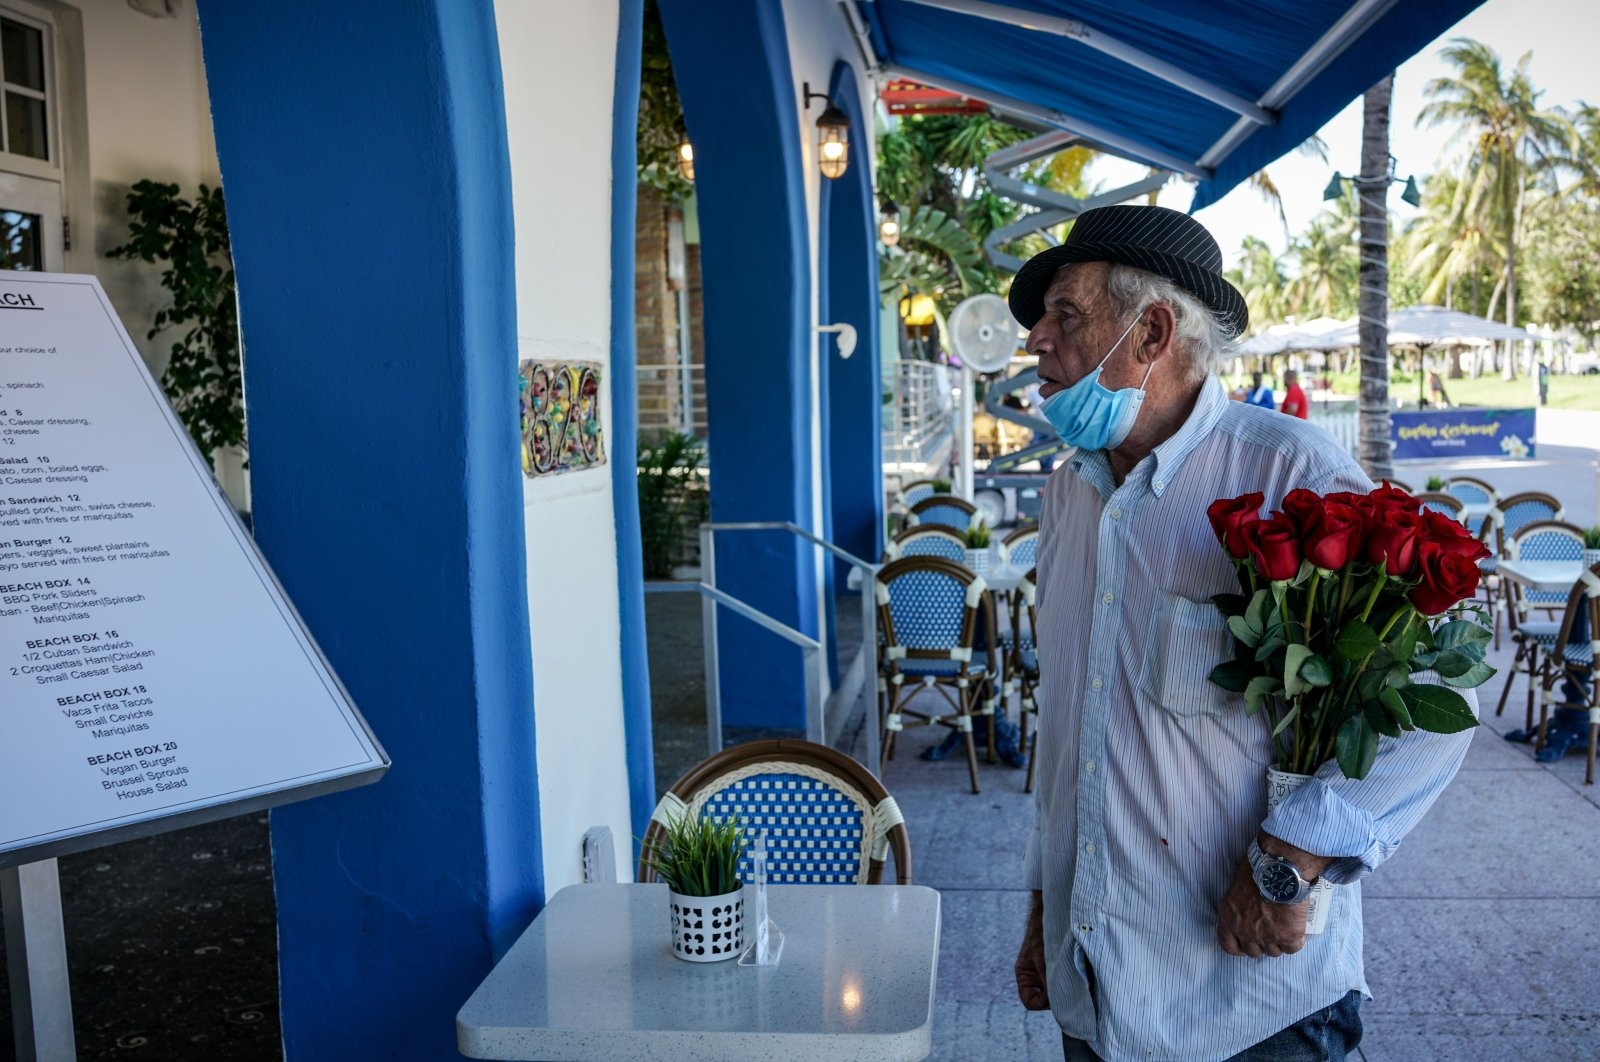 In this file photo taken on June 9, 2020, an elderly man holds a bouquet of roses as he looks at the menu outside a restaurant on Ocean Drive in South Beach, Miami. (AFP Photo)